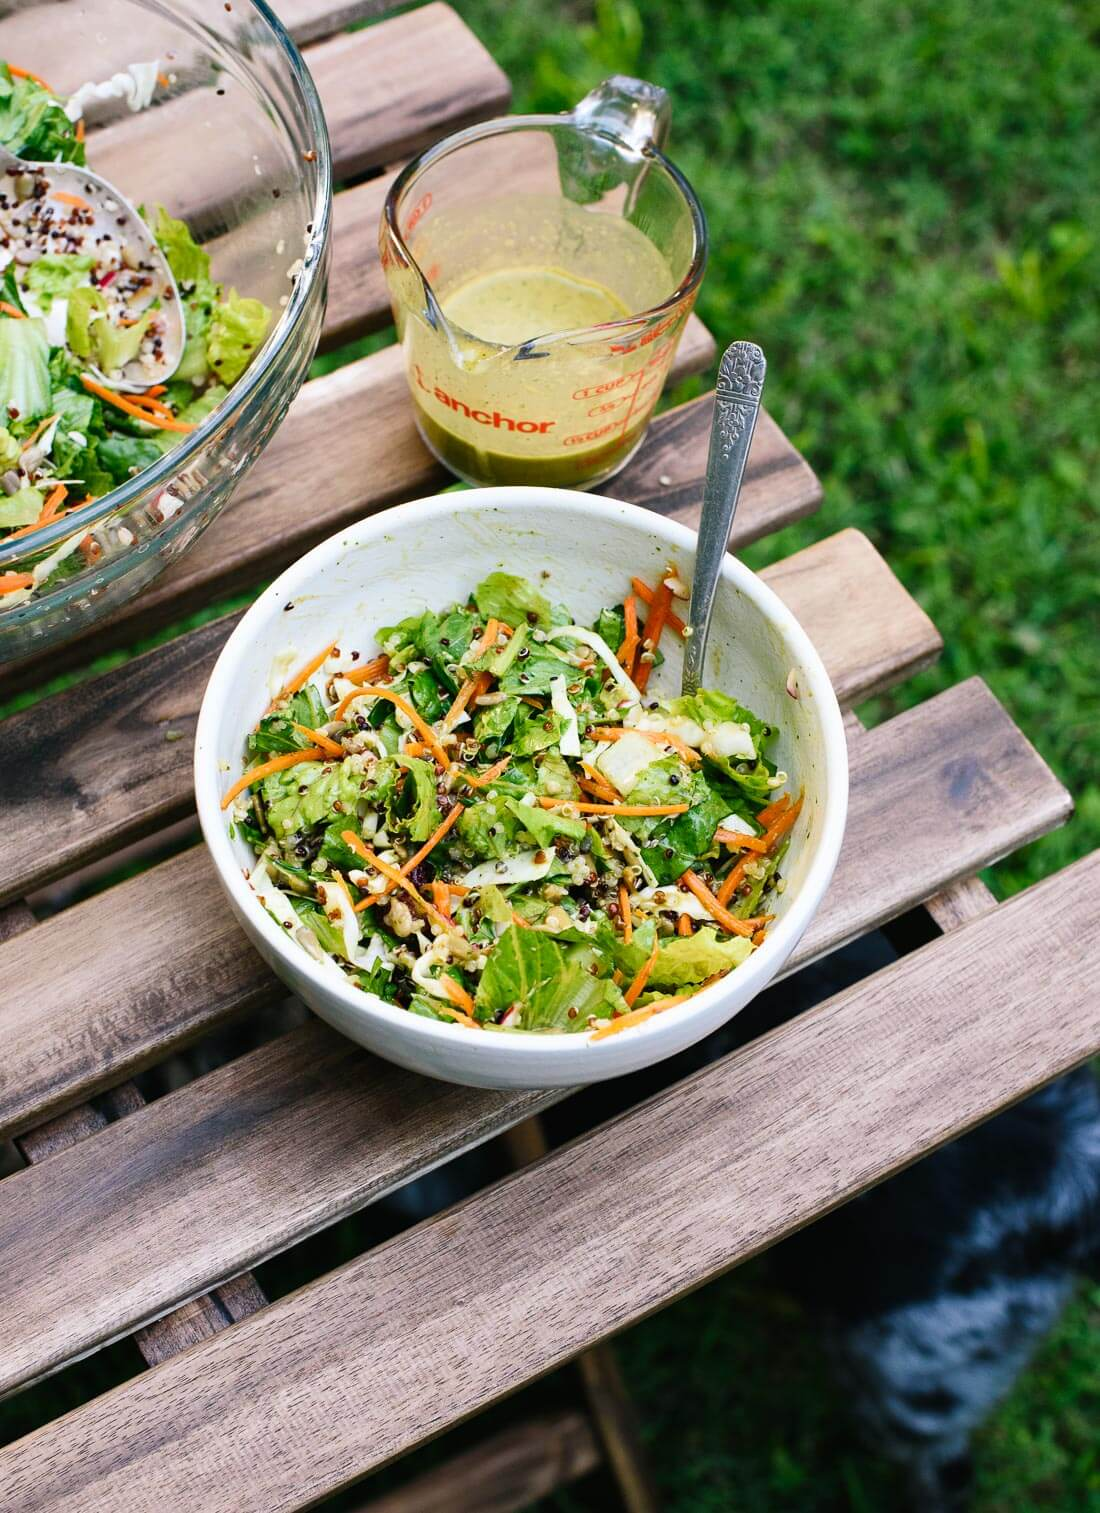 This mega crunchy salad recipe is refreshing and filling. Perfect for hot days! cookieandkate.com